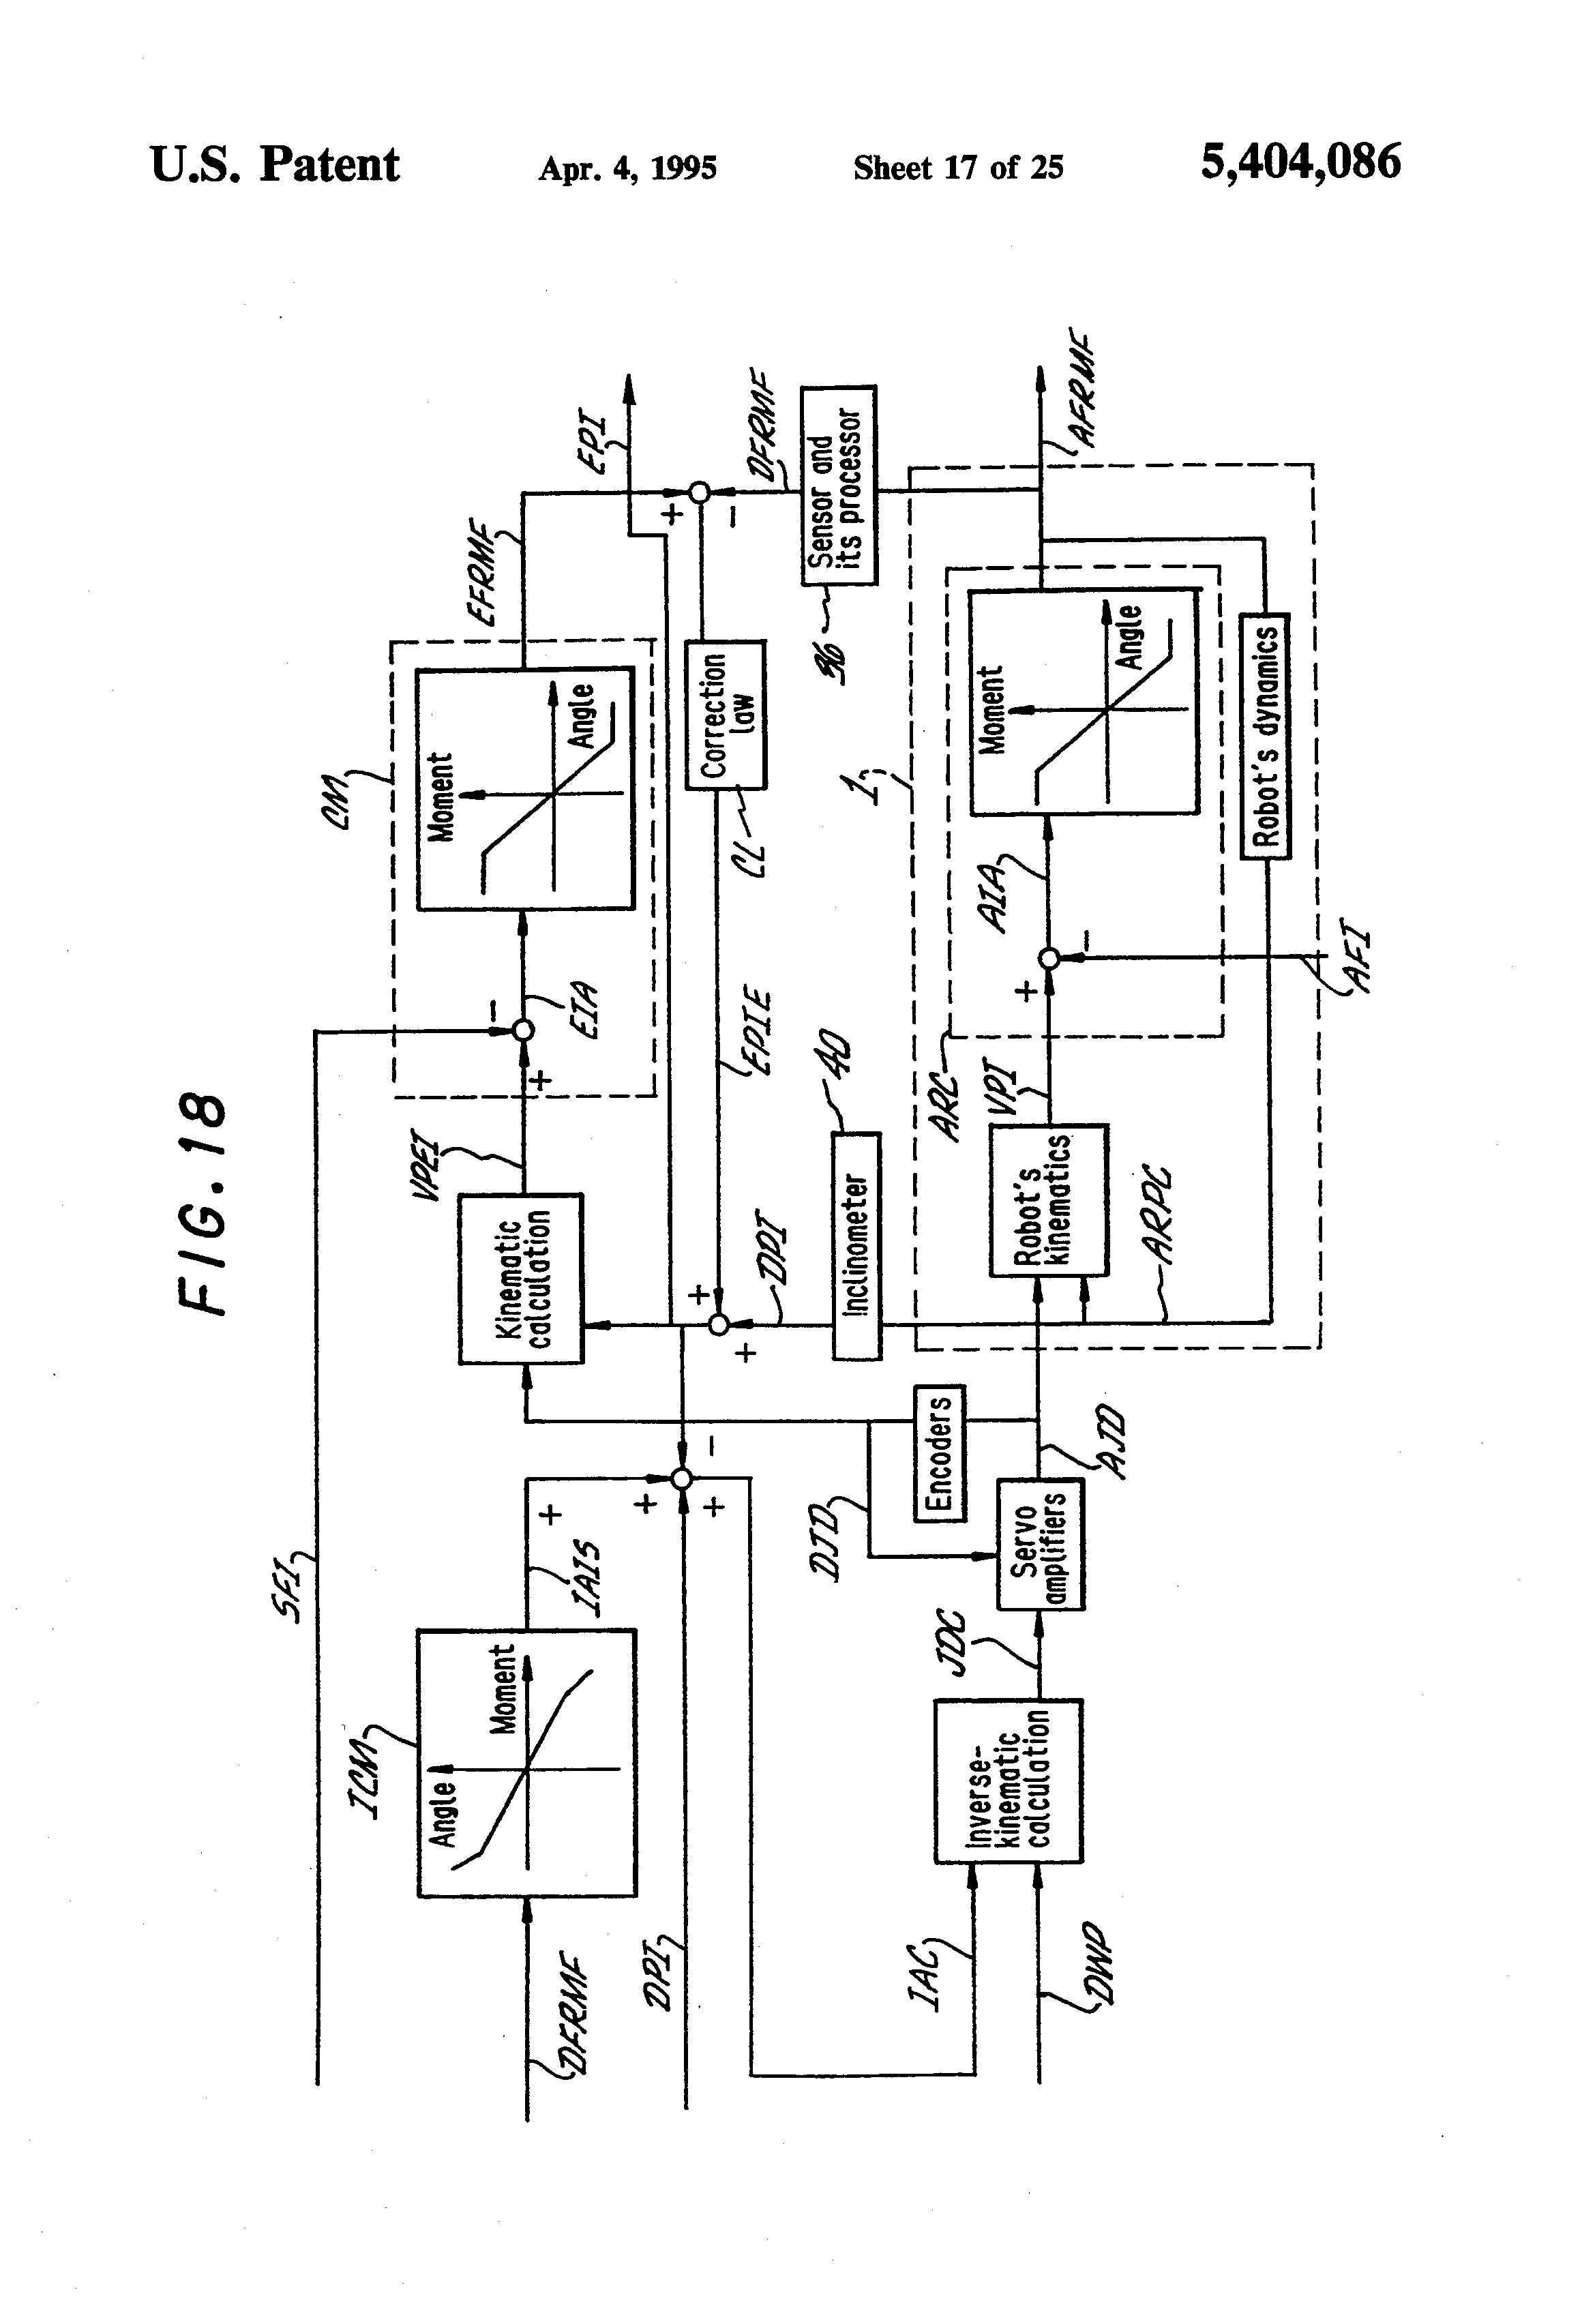 Patent Us5404086 System For Controlling Locomotion Of Legged Installation Wiring Diagram Hyundai Home Automation Table By Drawing